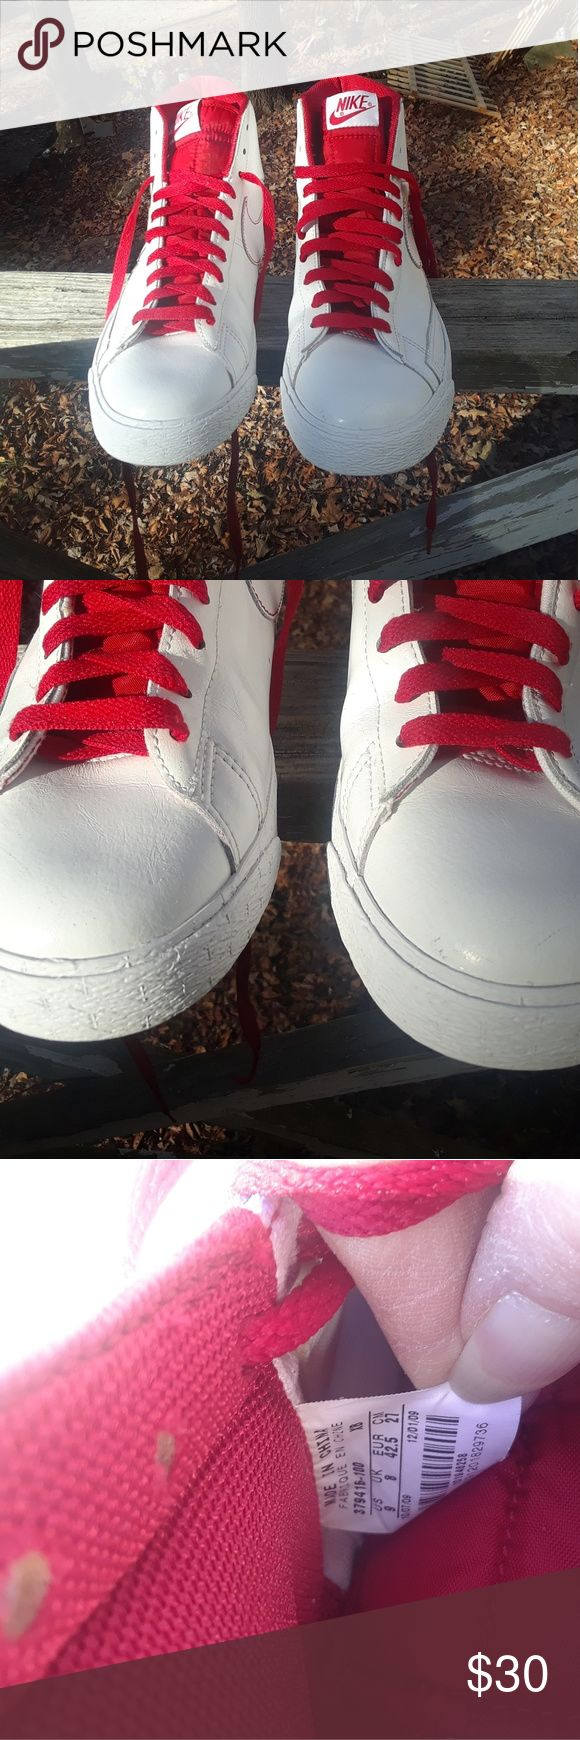 Nike Blaze SP Men's Shoe's size 9 This is a used pair of Nike Blaze SP Men's Shoe's size 9, #379416-100,they are white and red leather high top Shoe's, there is scuff marks on both Shoe's on the toes.there are no holes or tears on either shoe. Please view the pictures and if you have any questions please ask. Nike Blaze SP Shoes Sneakers